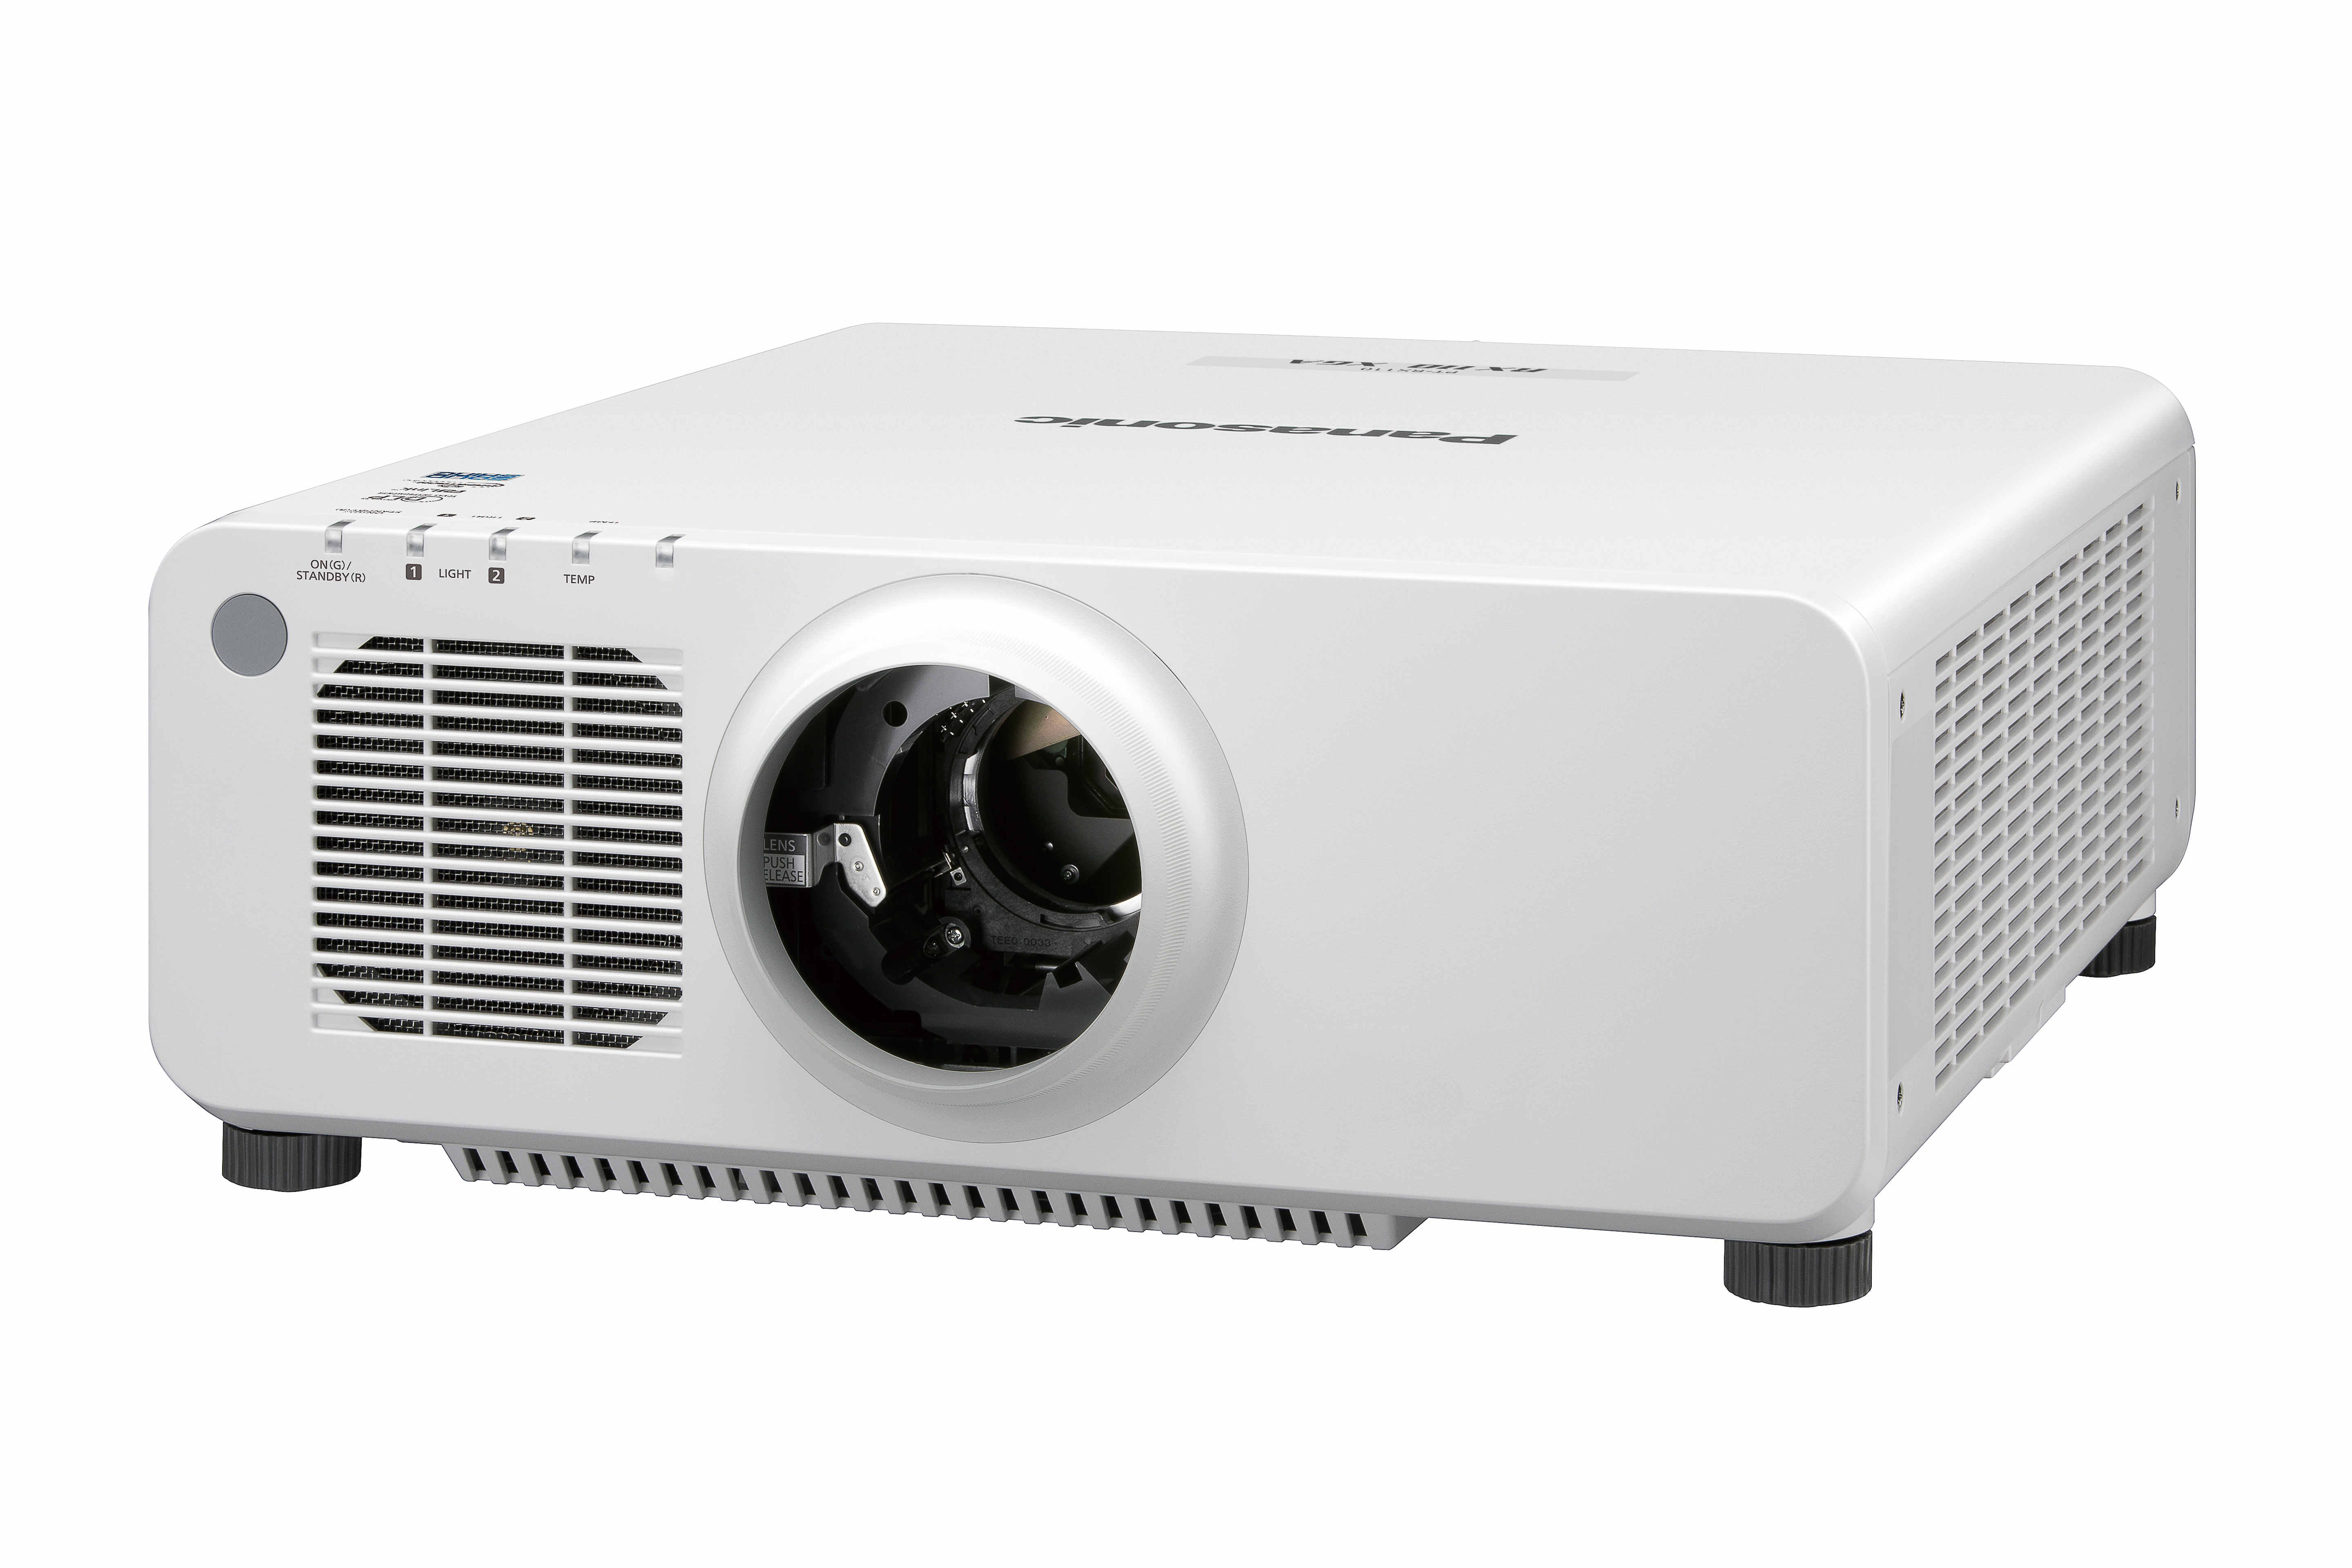 10,400lm XGA Laser Projector in White with No Lens